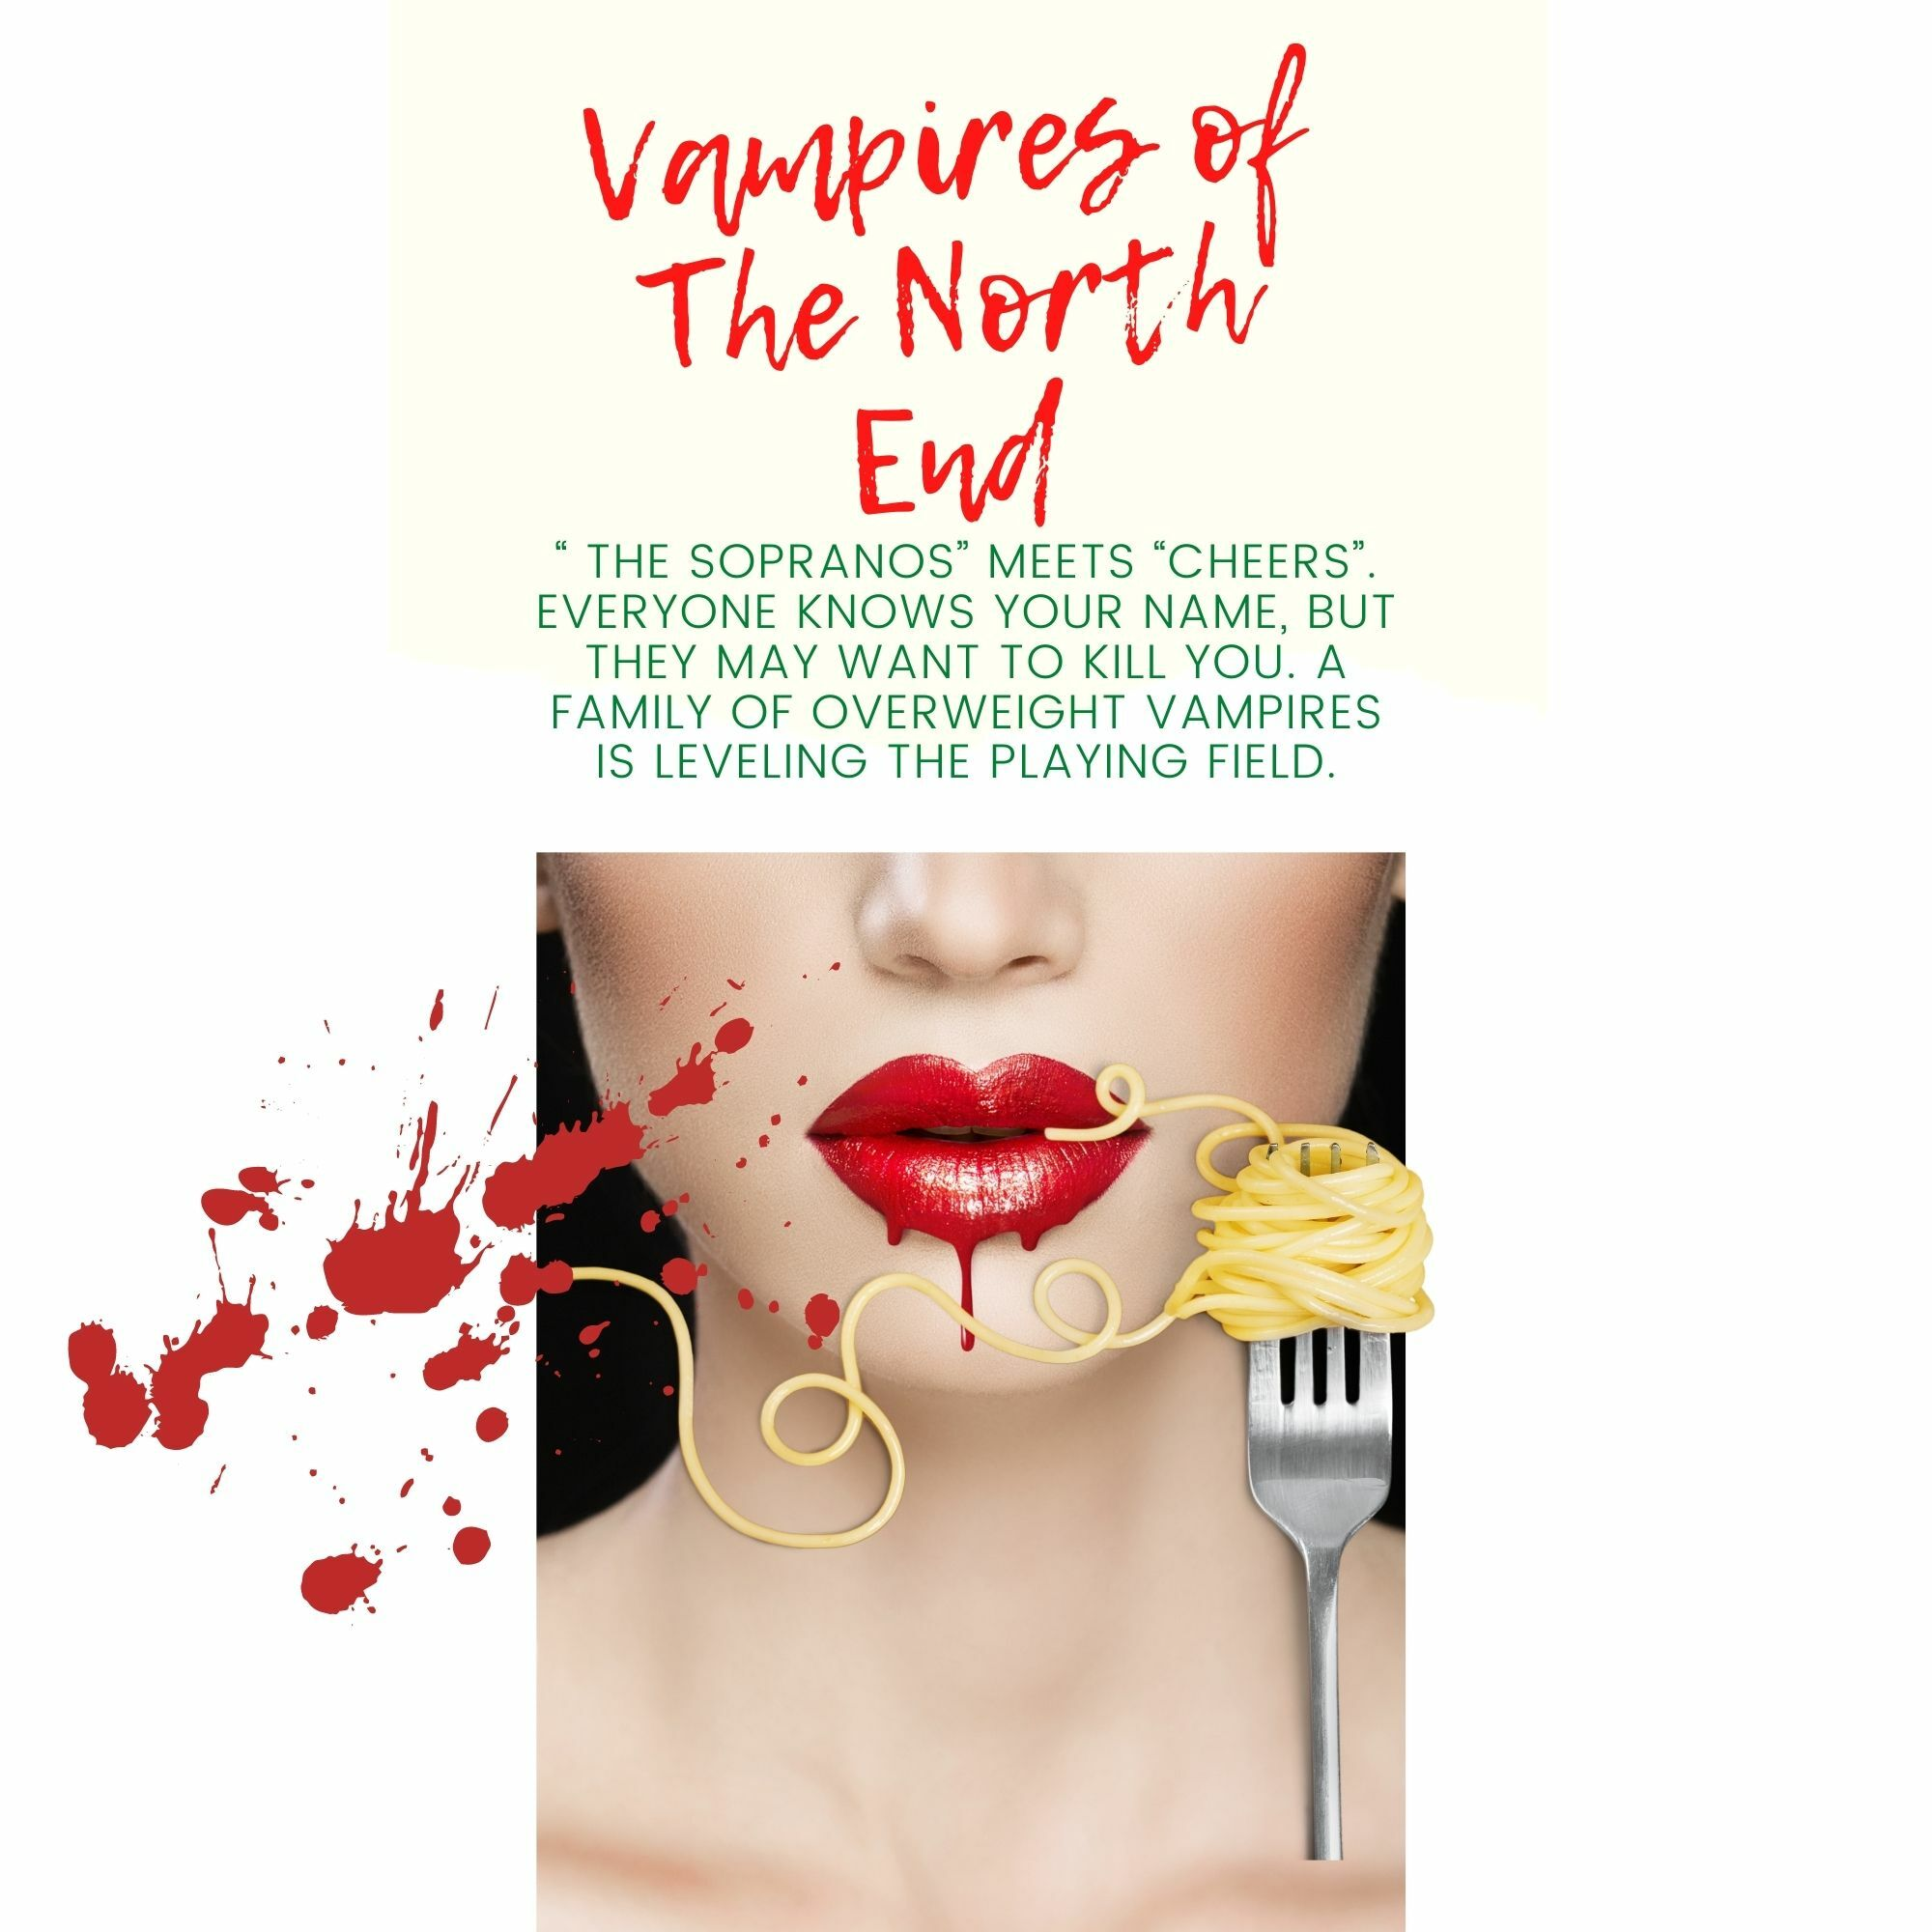 VAMPIRES OF THE NORTH END TV PILOT